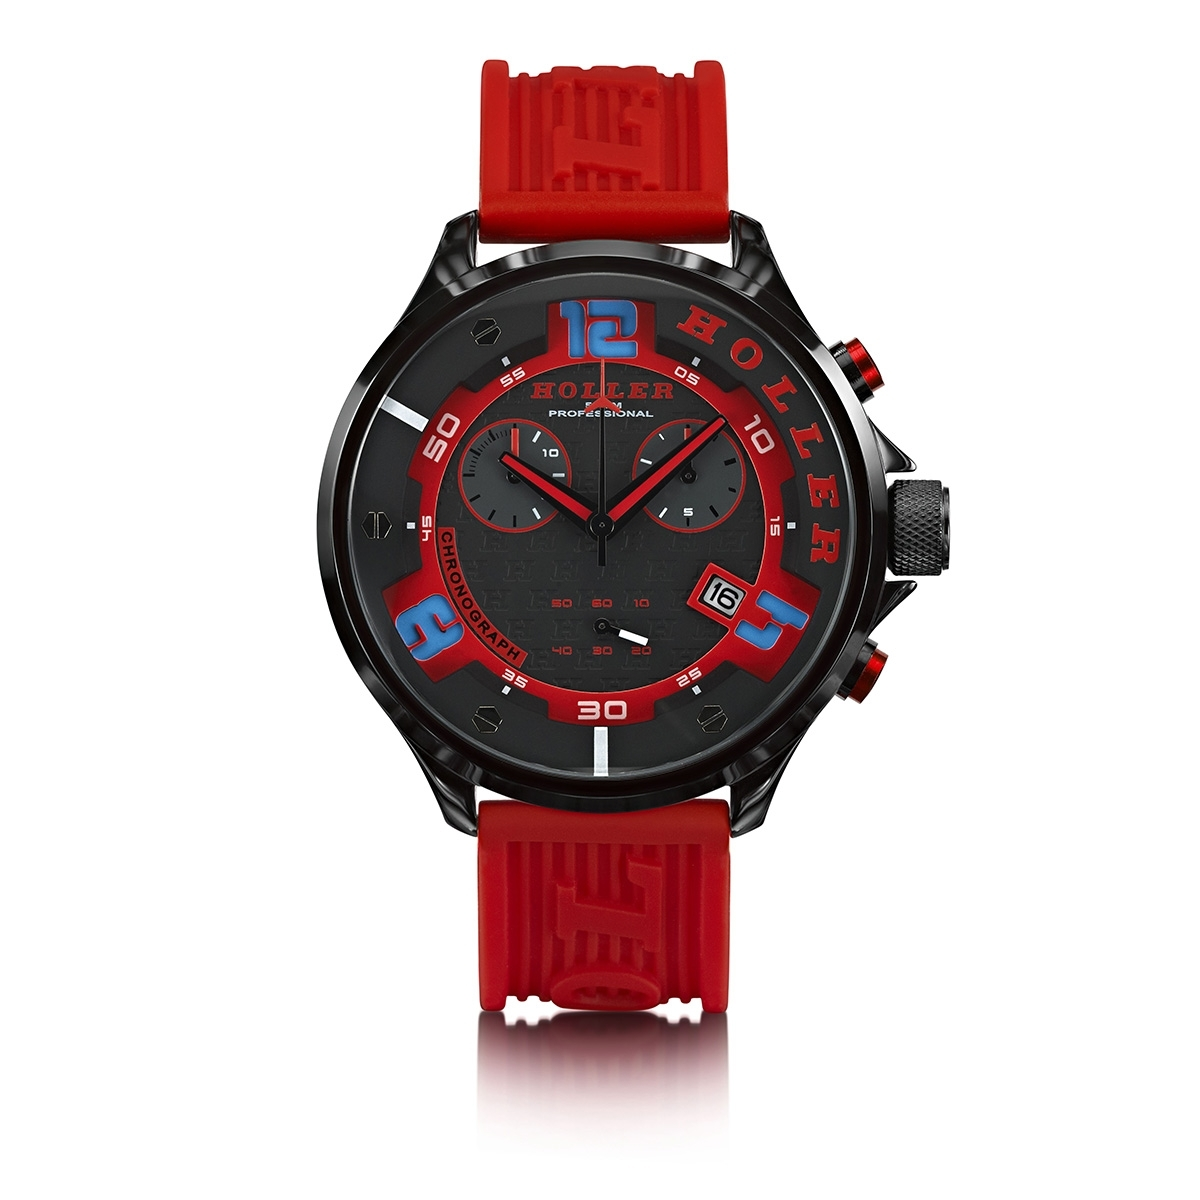 Stax Chrono Red Watch